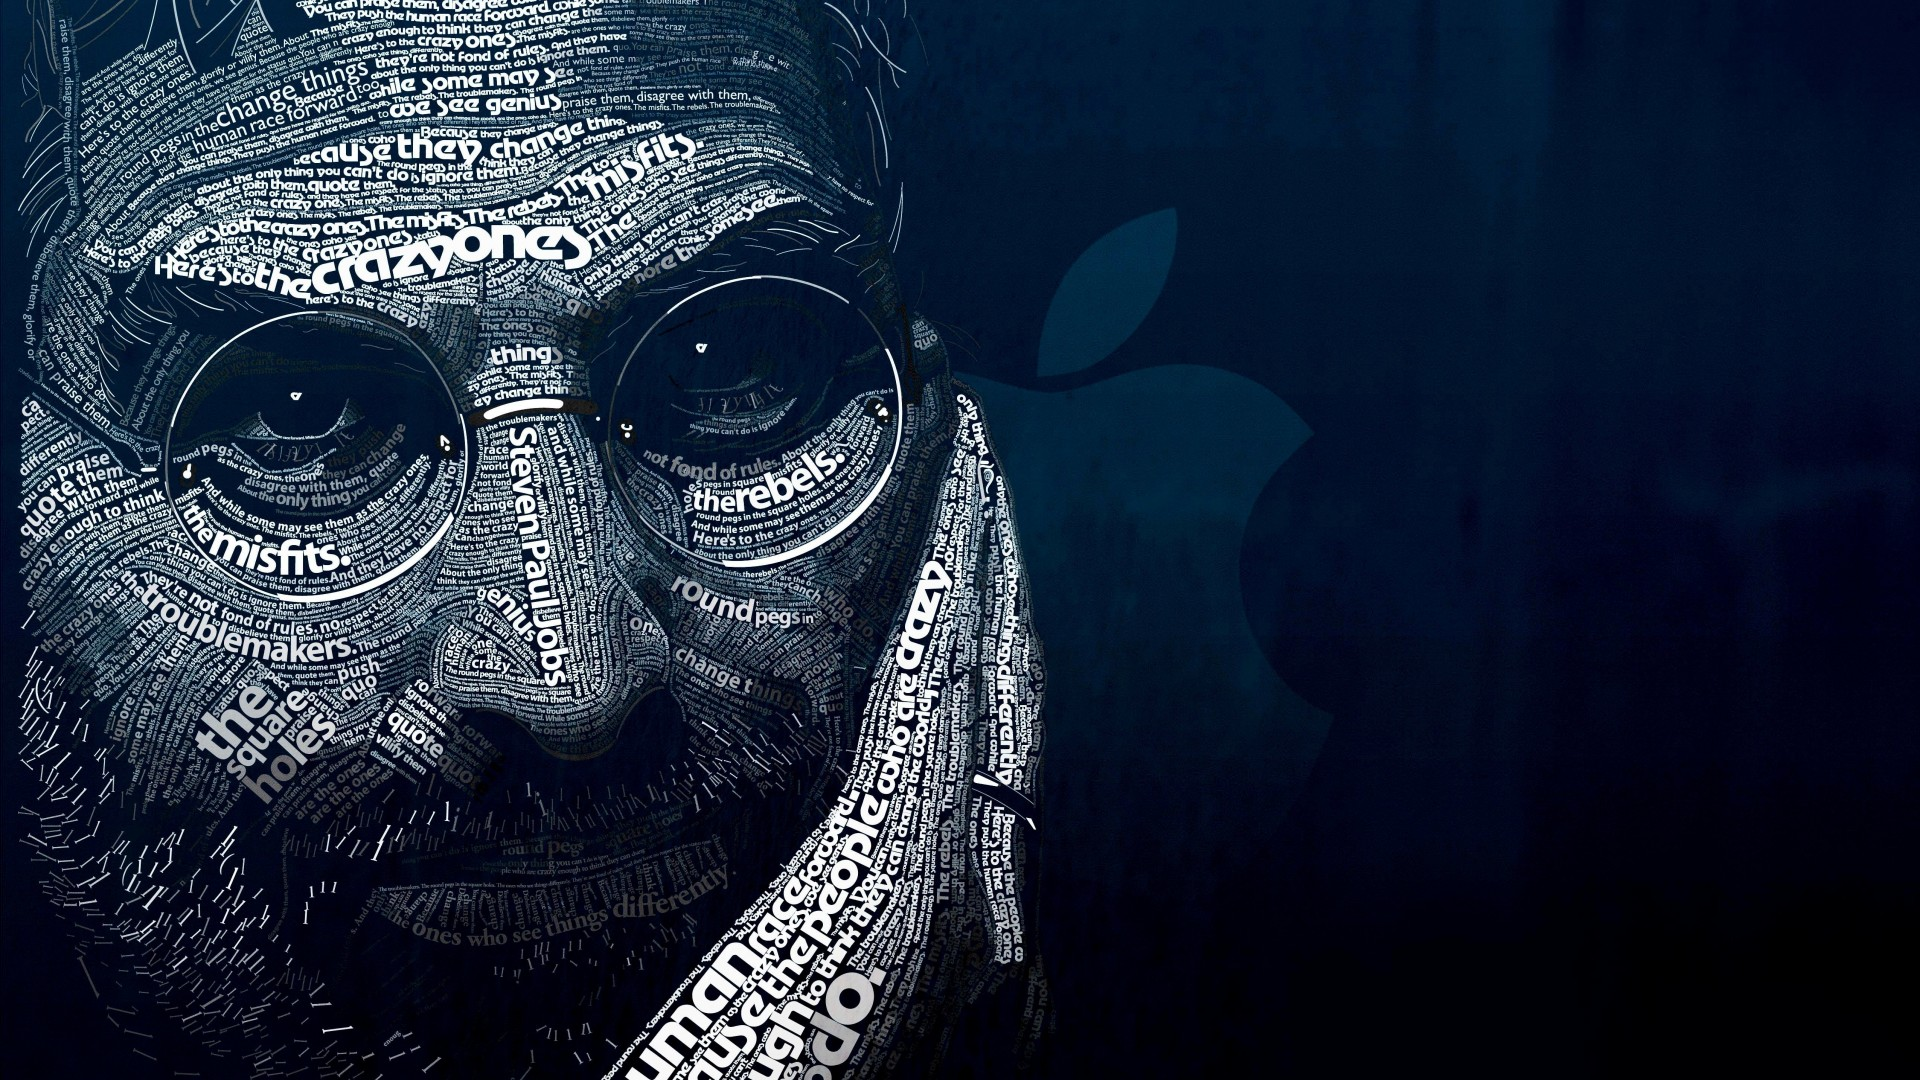 Steve Jobs Typographic Portrait Wallpaper for Desktop 1920x1080